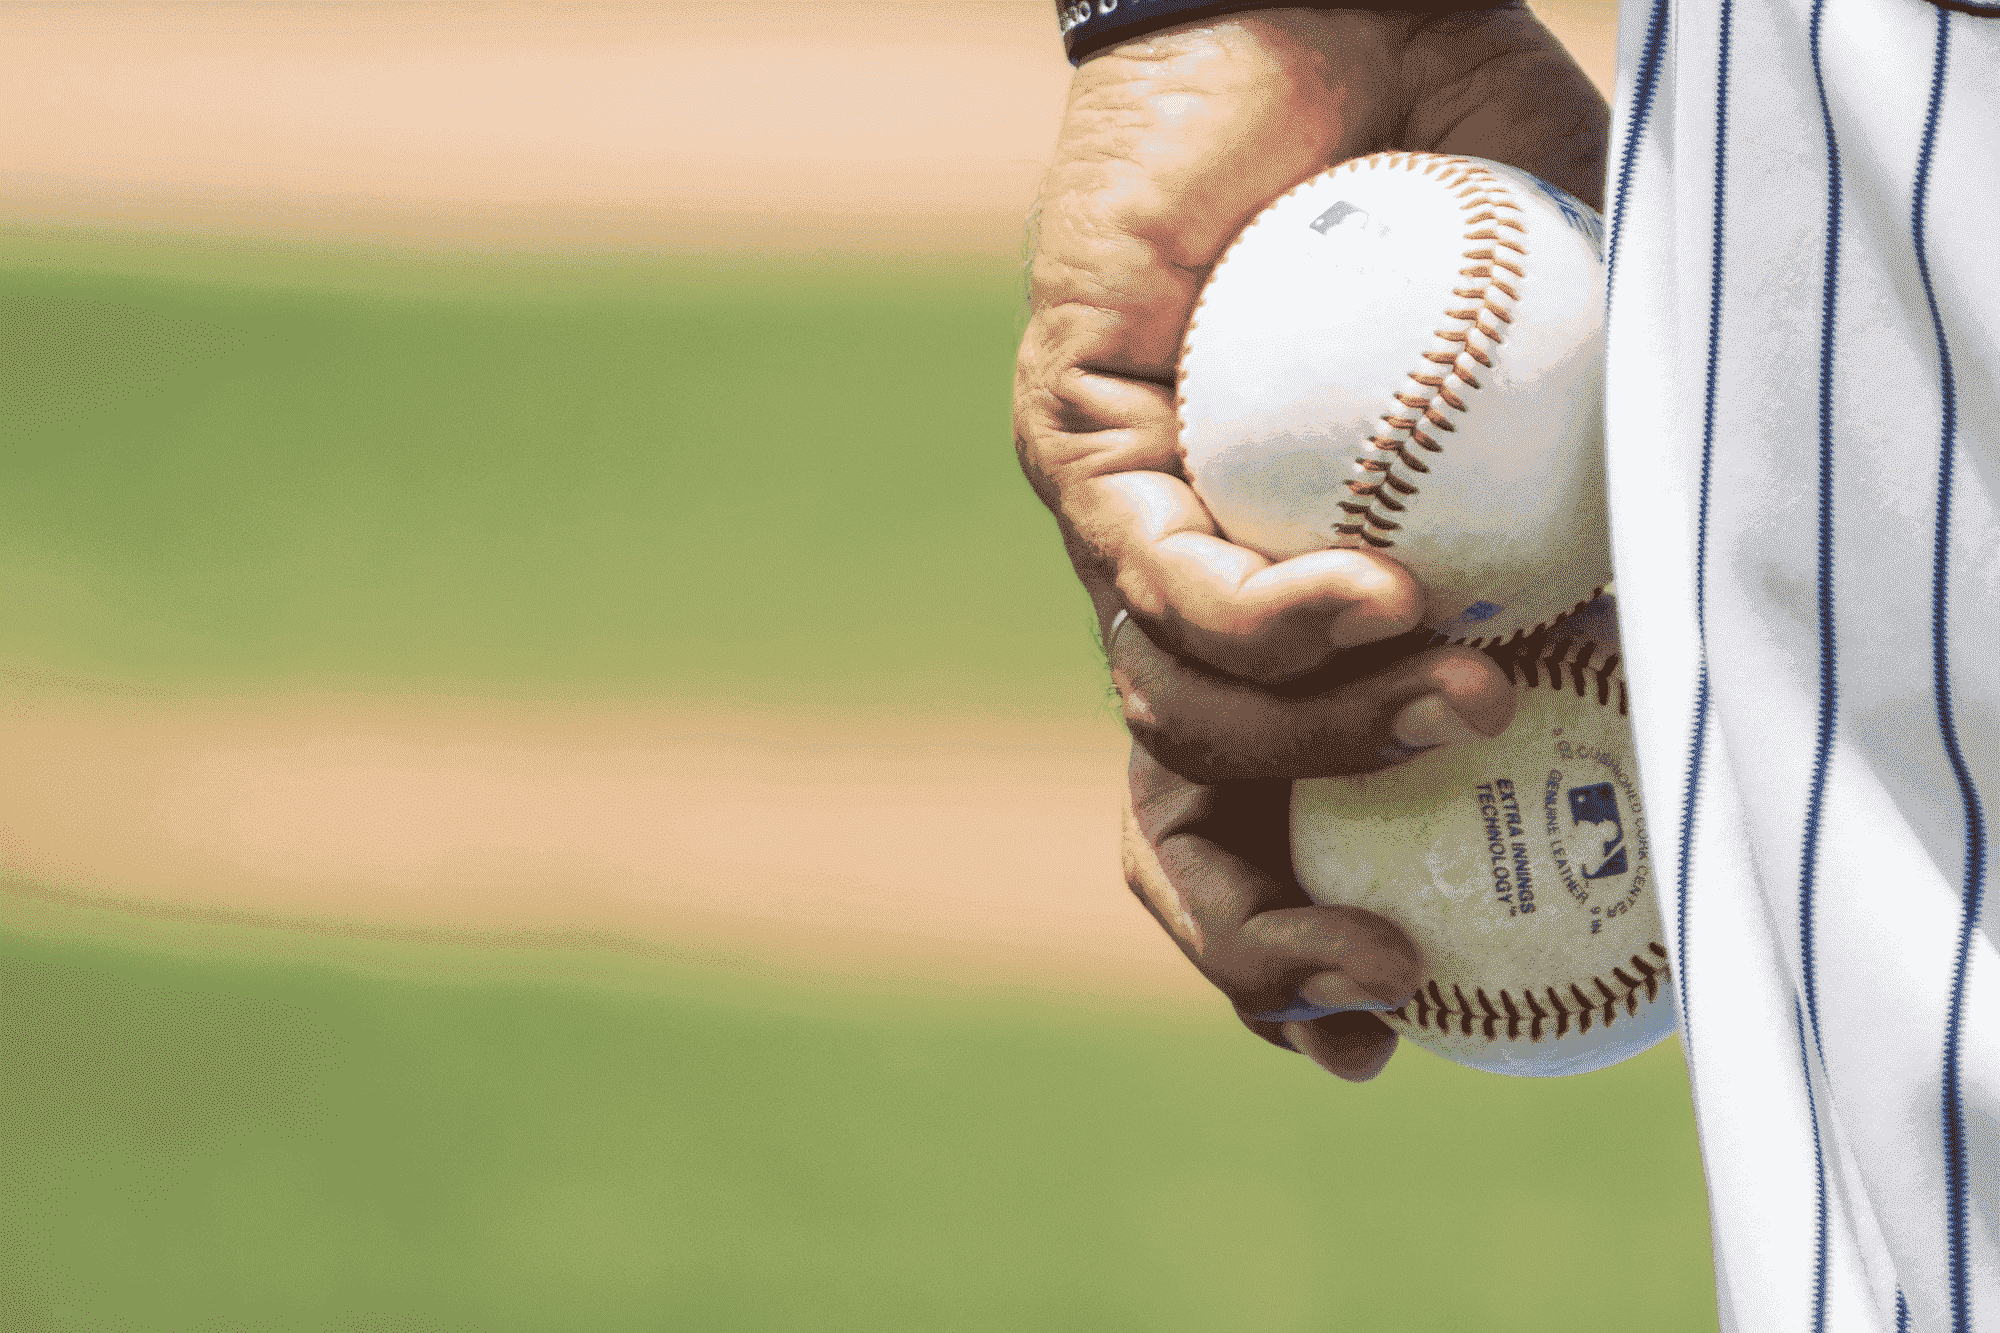 MLB Brands Trend on BrandGraph® After Delayed  Season Officially Starts